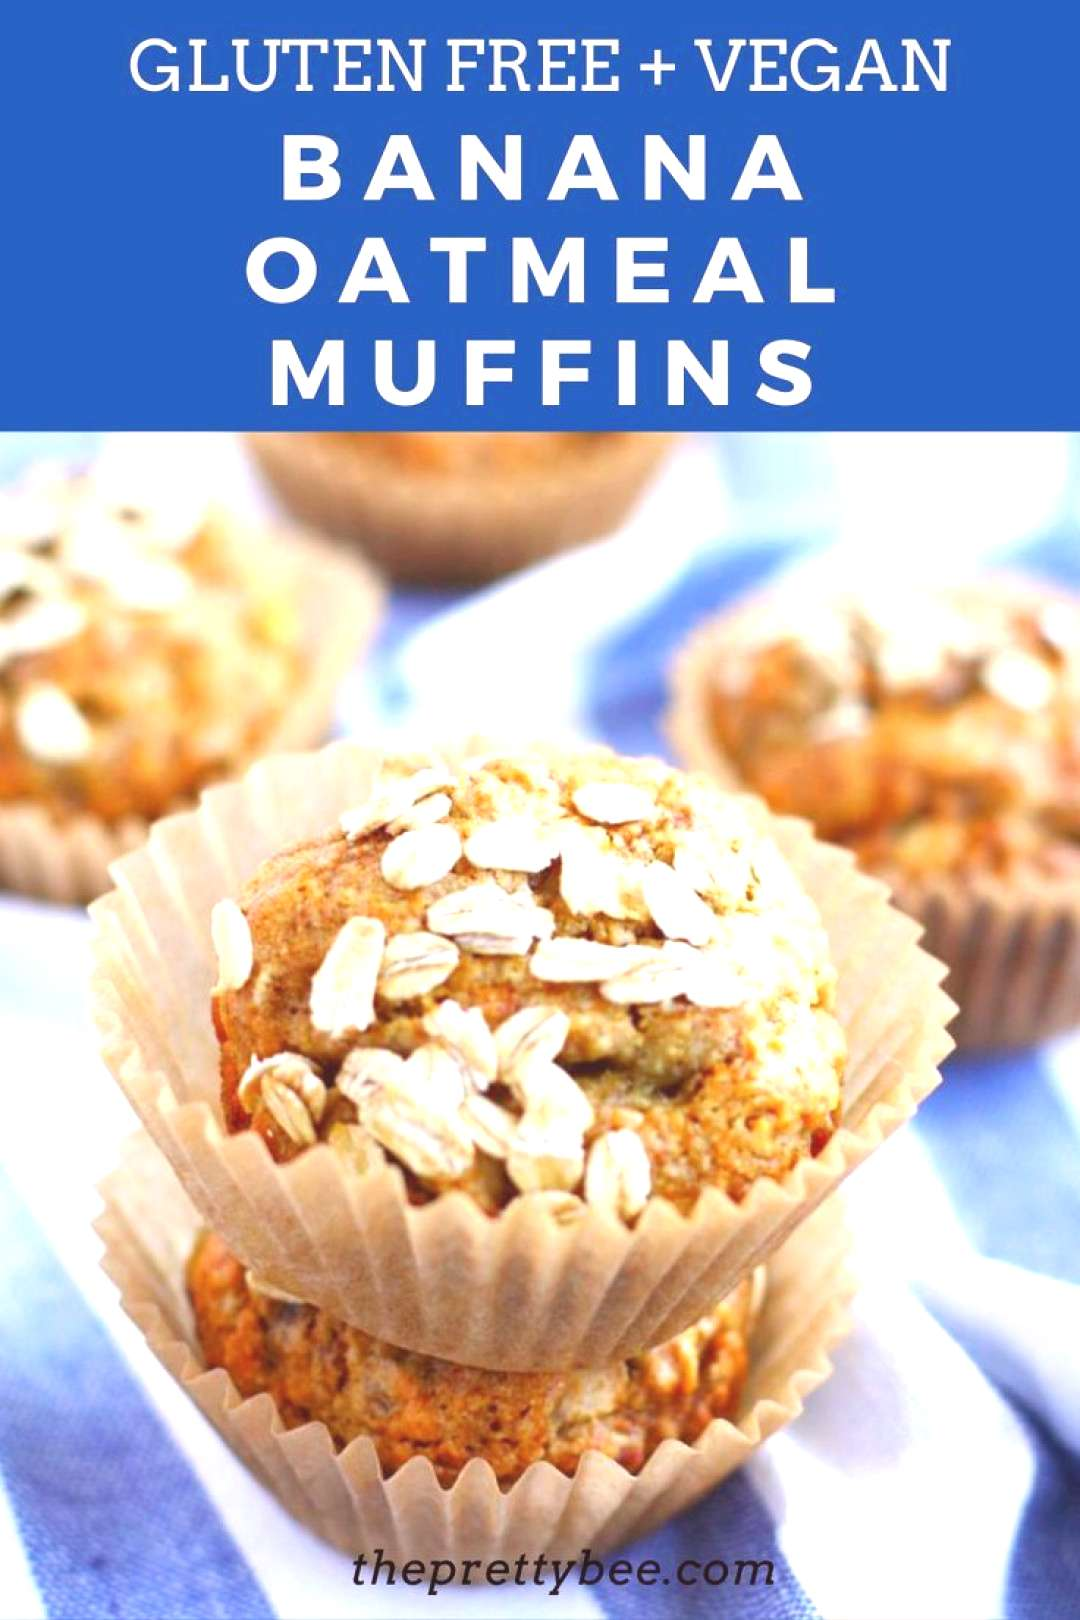 Vegan Banana Oat Muffin Recipe This is a simple banana muffin recipe that's just right for breakfas